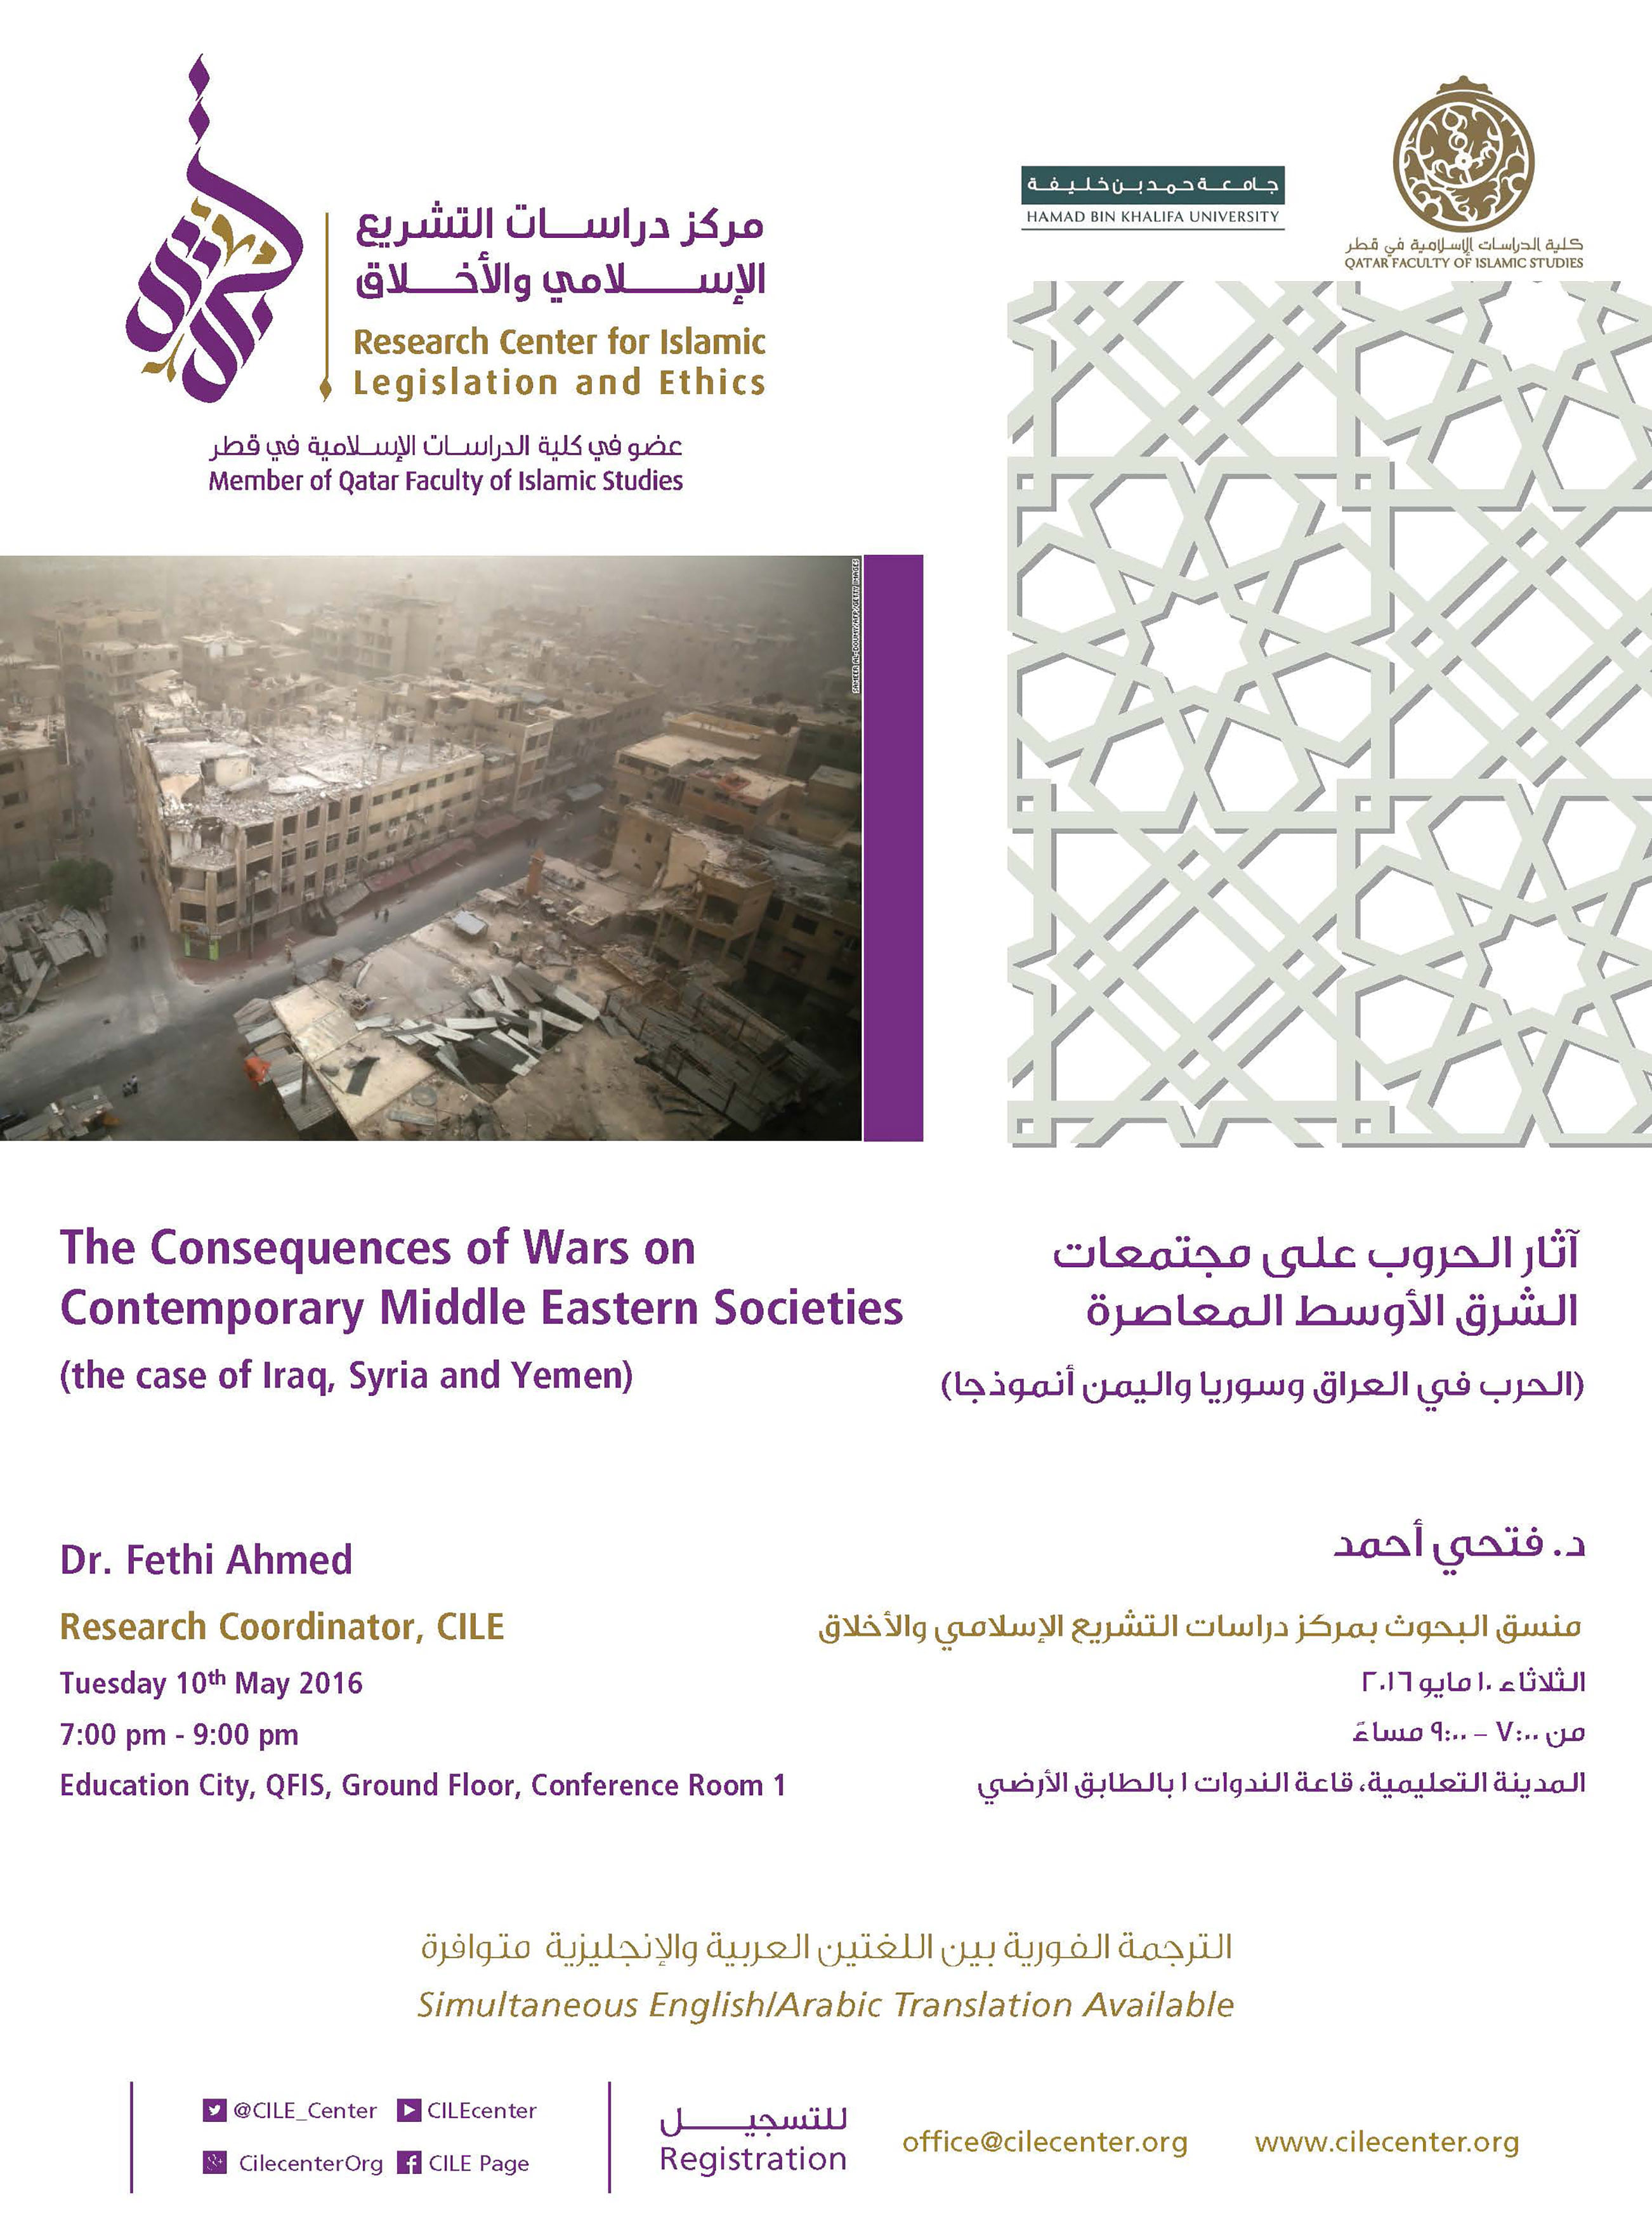 05/2016 The Consequences of Wars on Contemporary Middle Eastern Societies (the case of Iraq, Syria and Yemen)